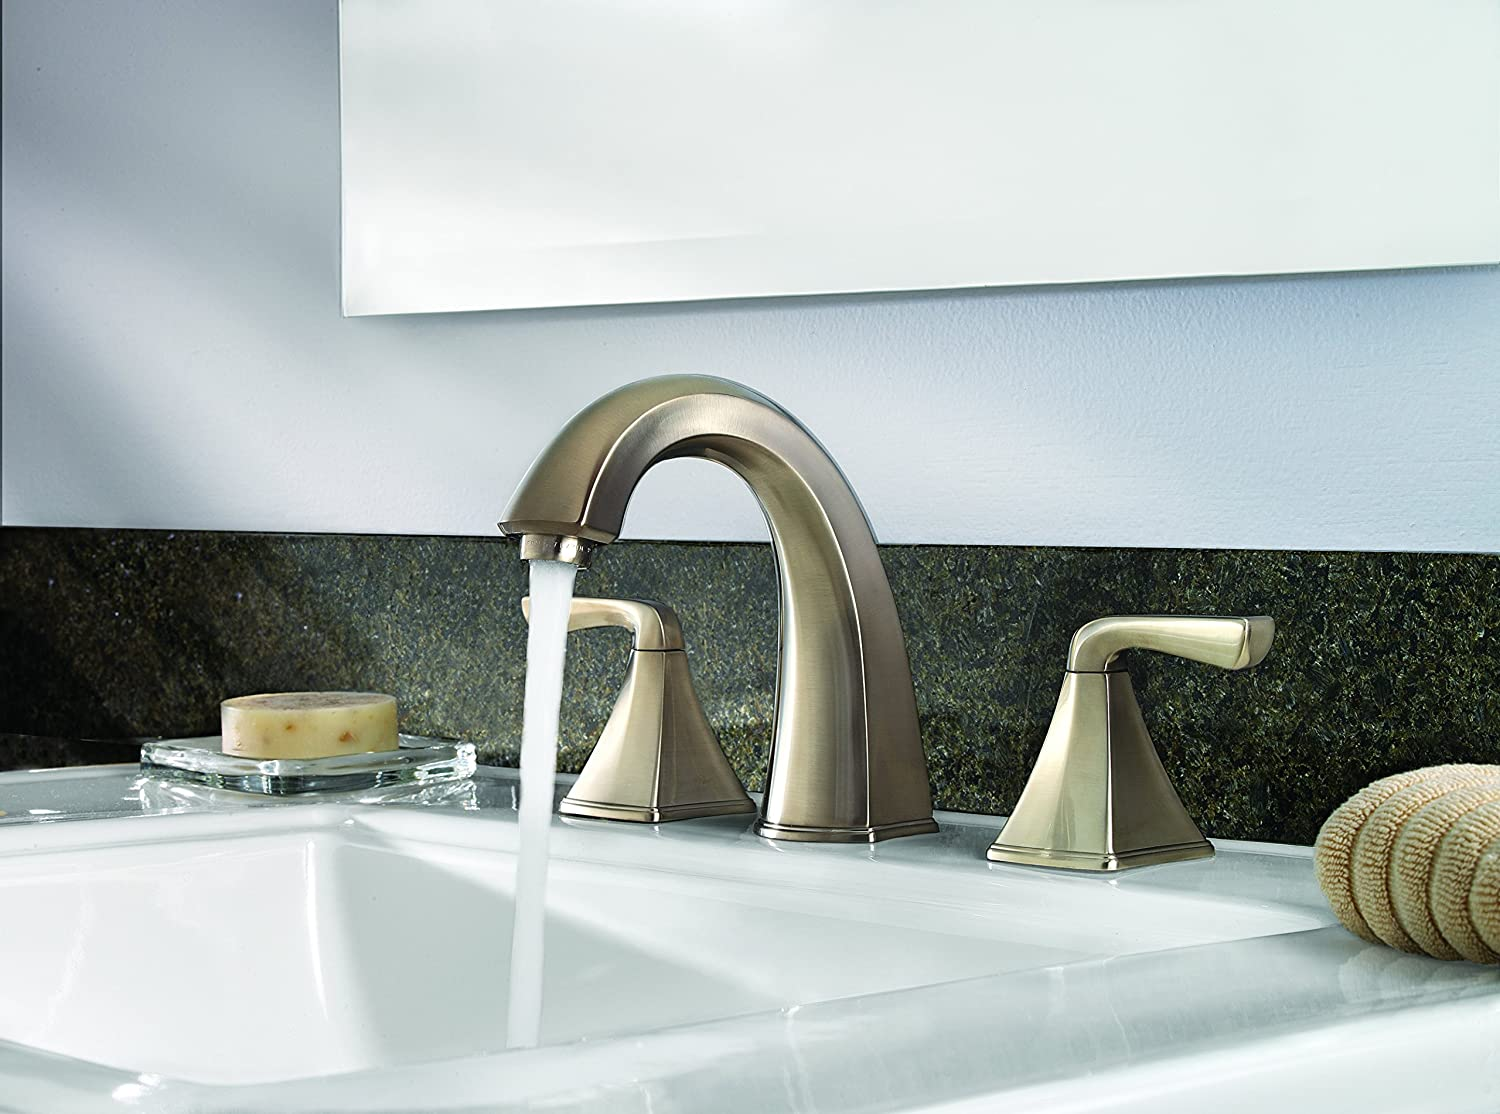 Price Pfister F049SLKK Selia Widespread Bathroom Sink Faucet ...